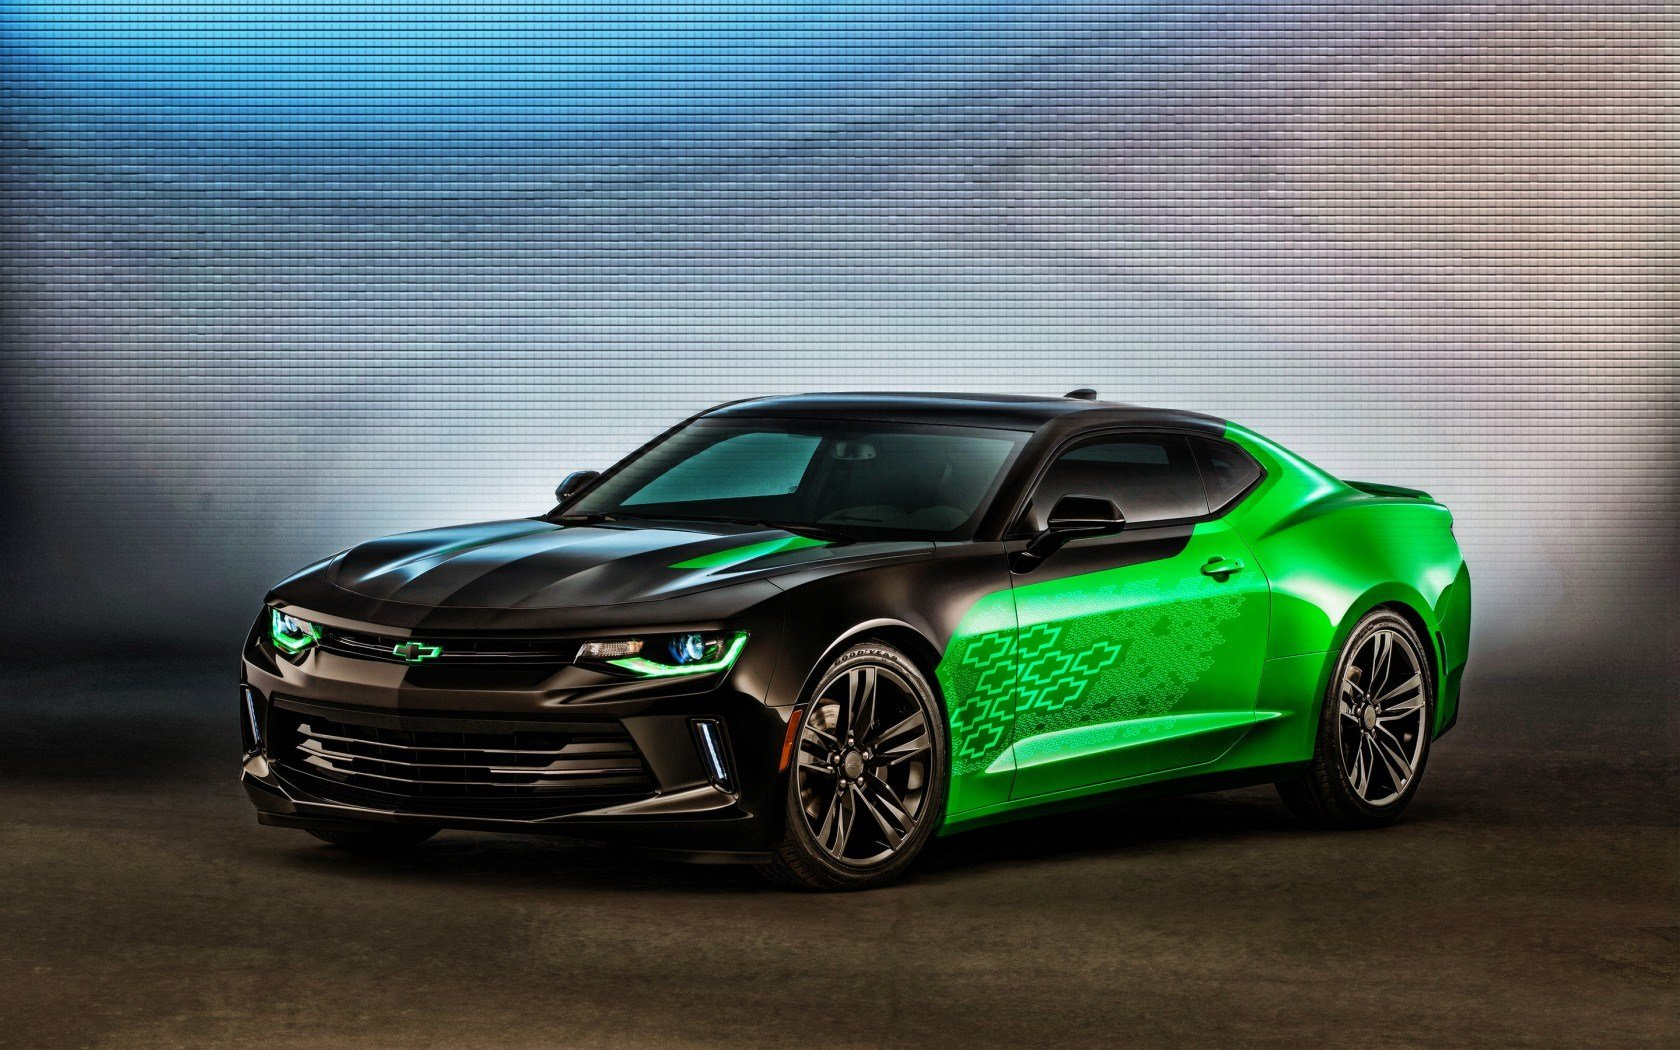 New 2016 Chevy Camaro Wallpaper Hd Car Wallpapers Id 5930 On This Month